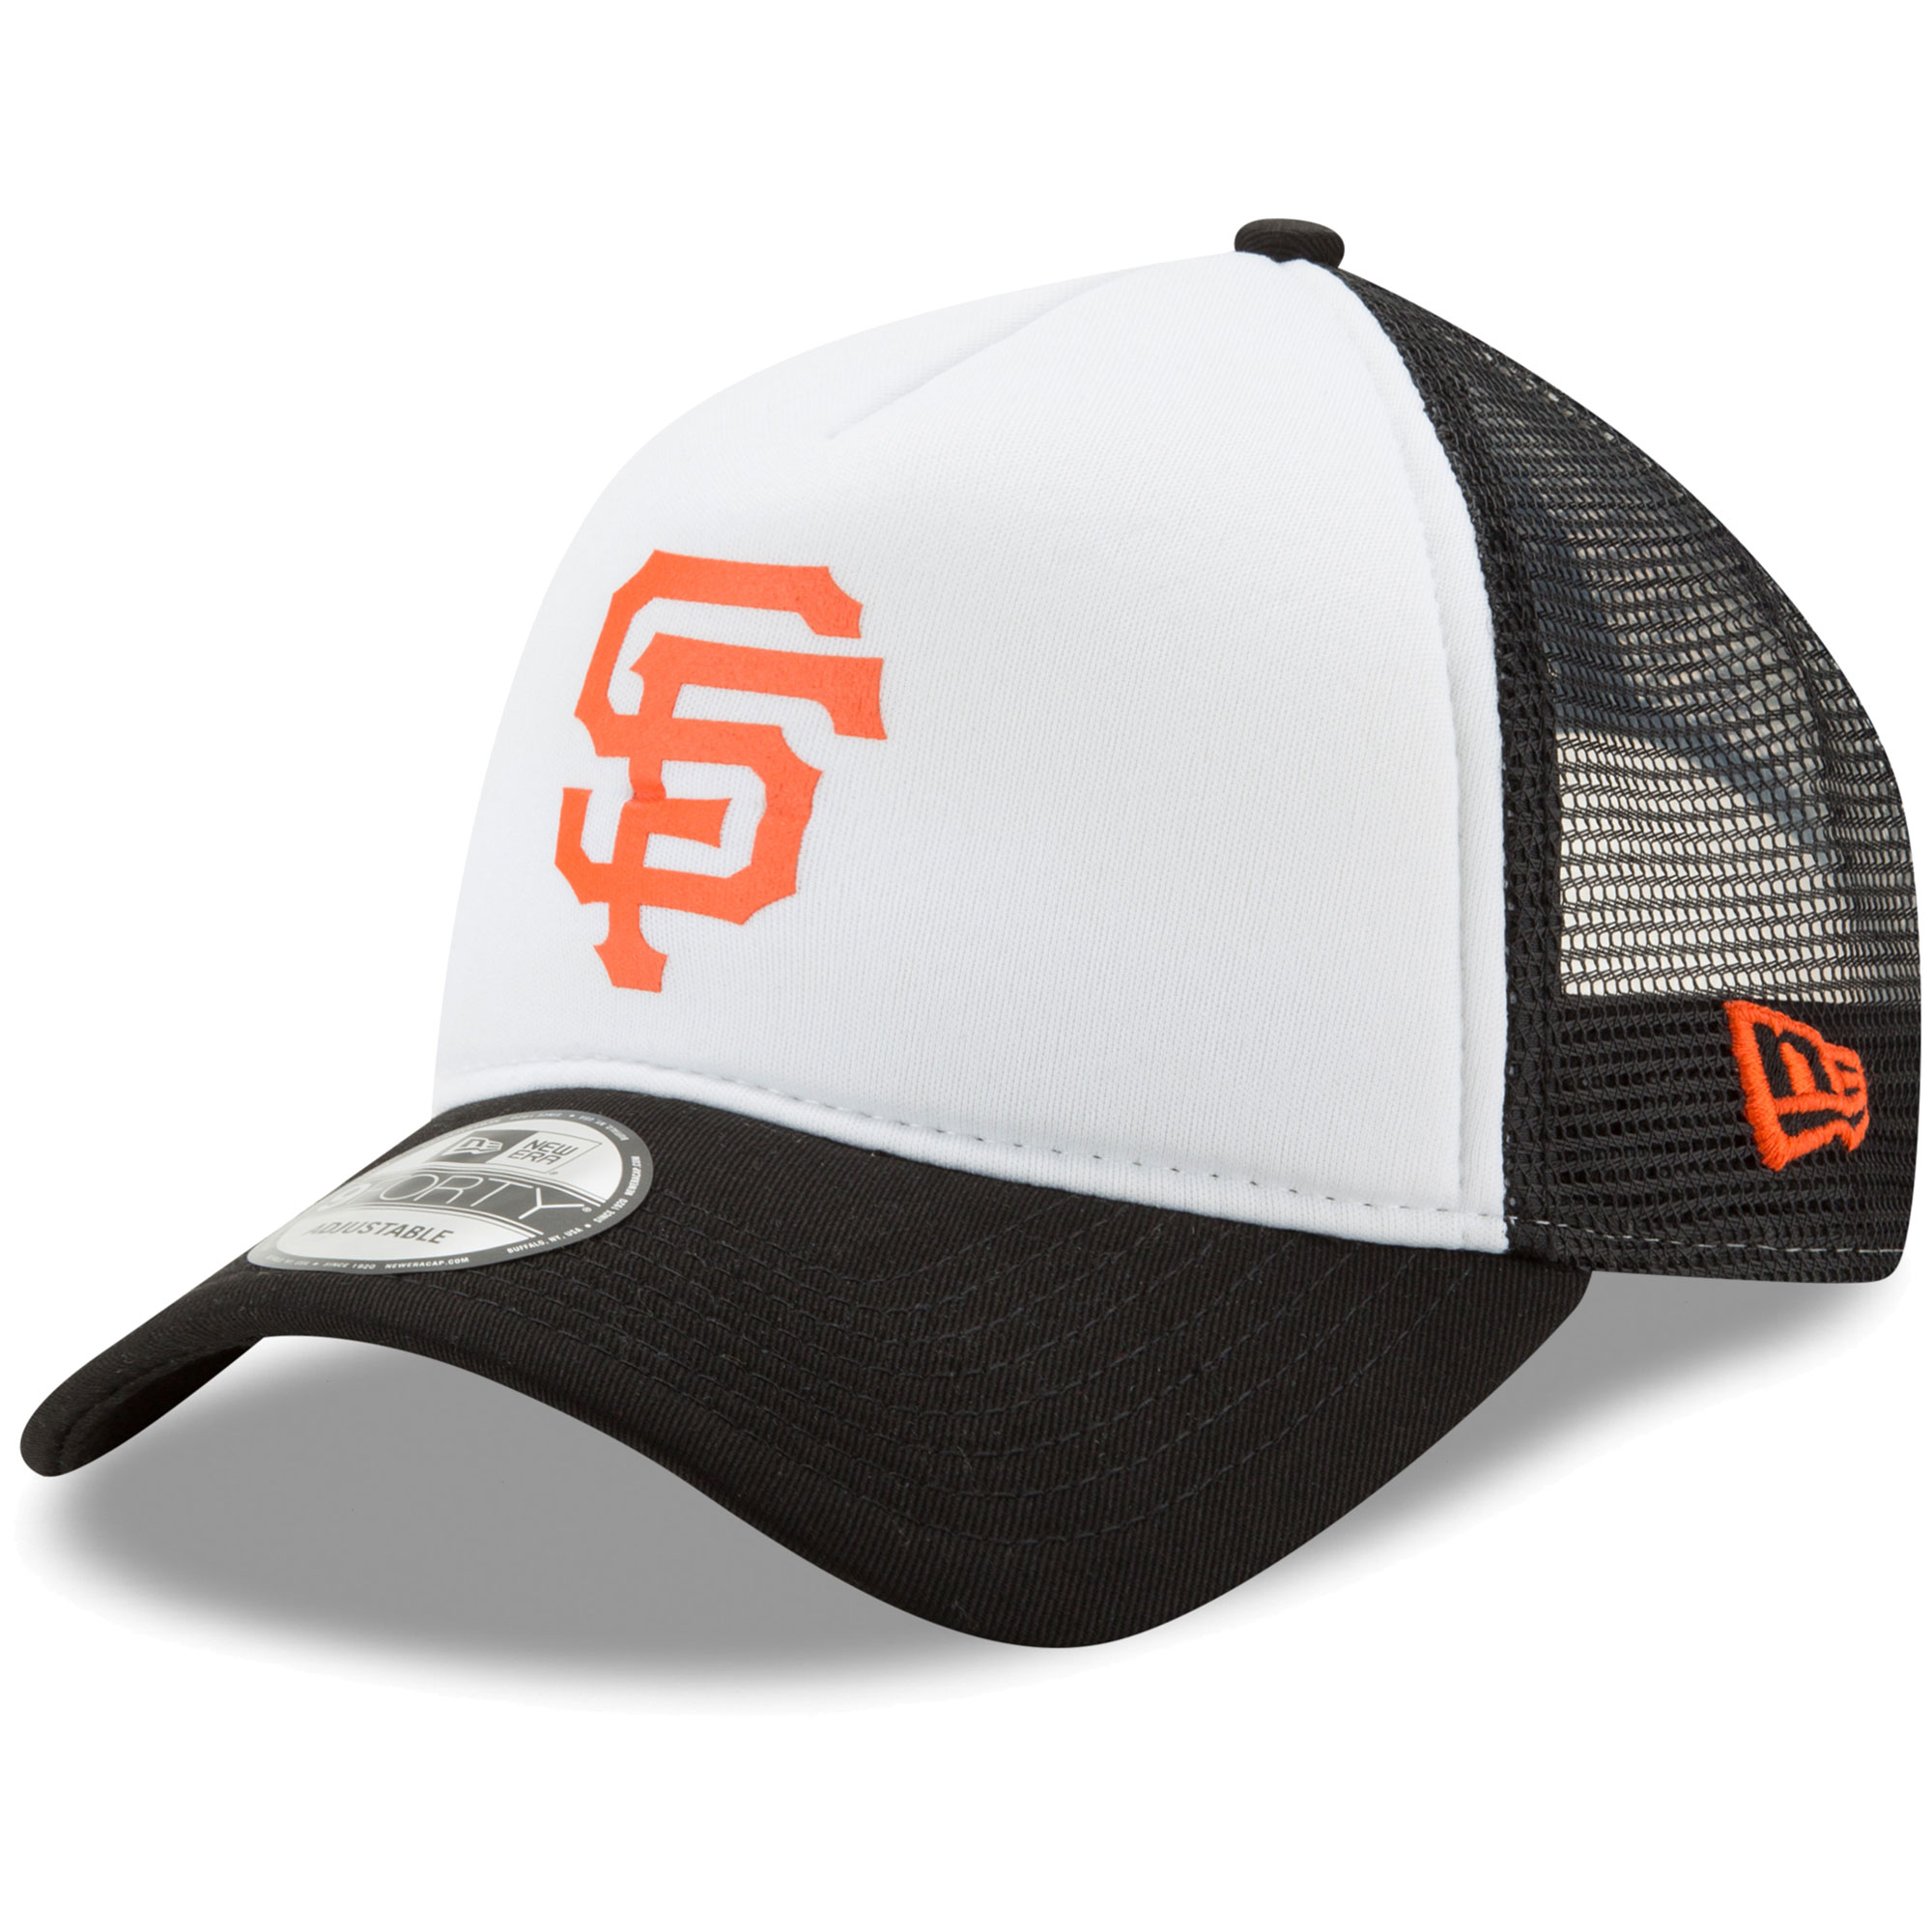 San Francisco Giants New Era Trucker Hit A-Frame 9FORTY Adjustable Snapback Hat - White/Black - OSFA